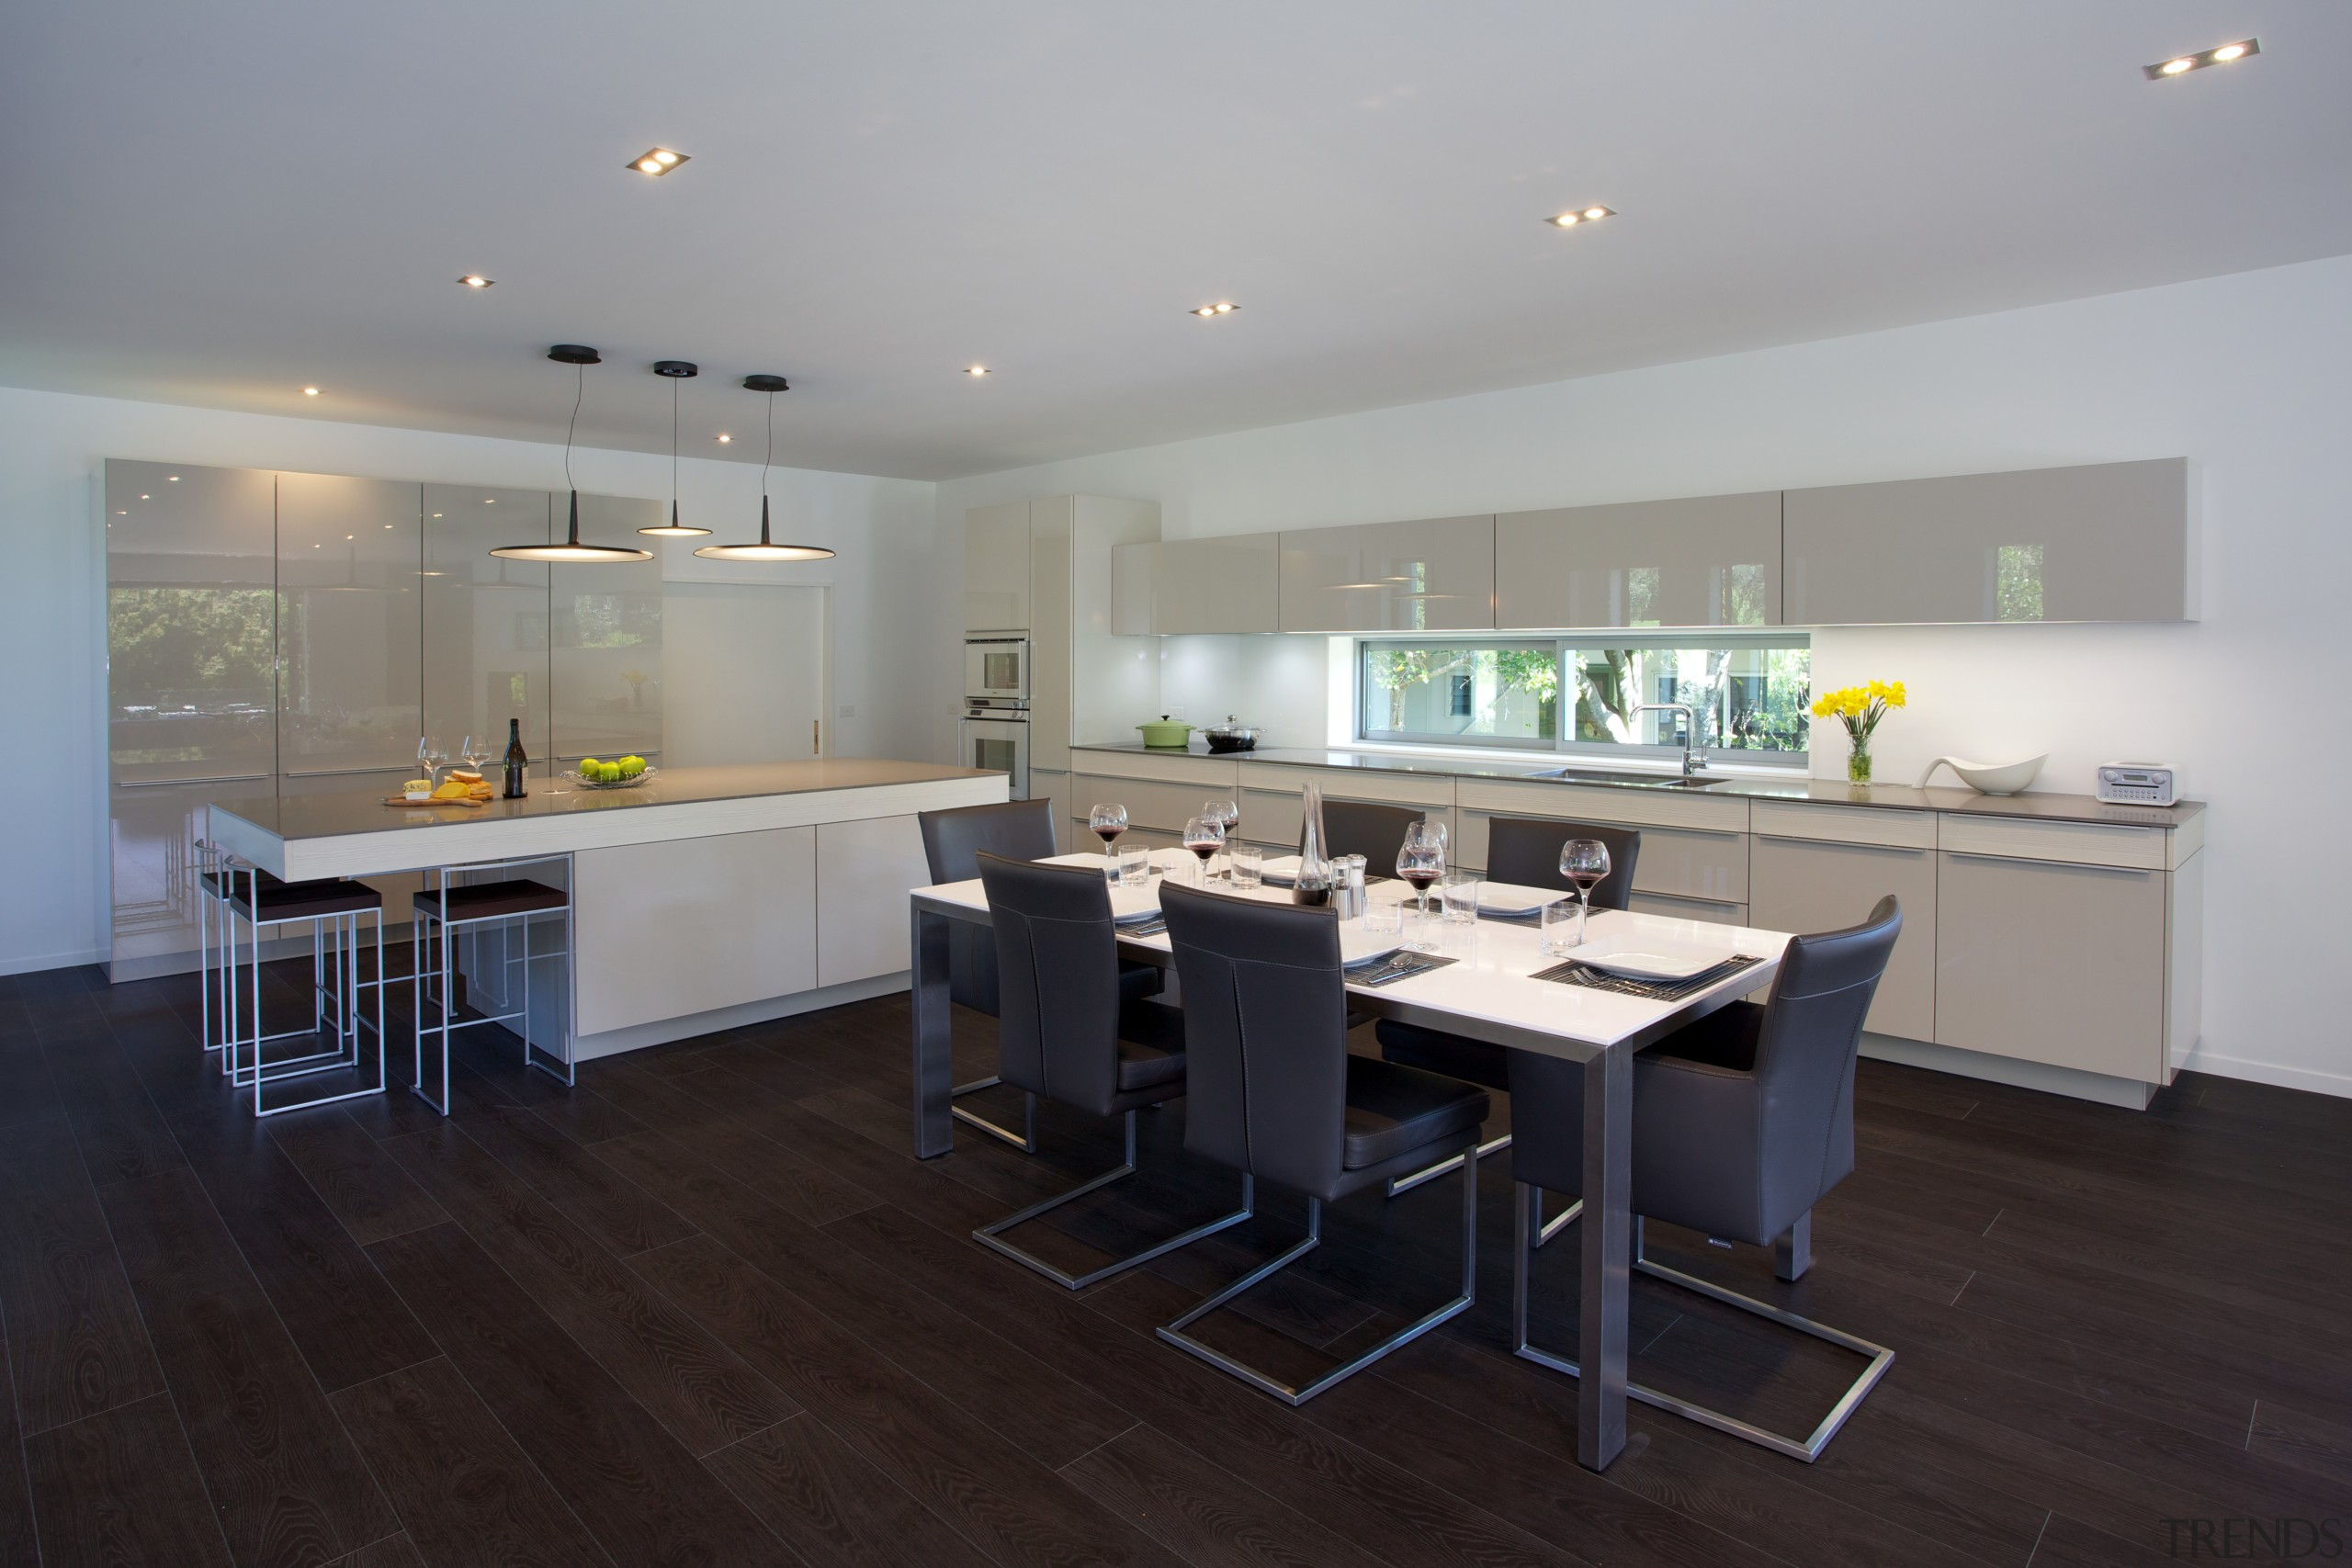 The sliding door in the end wall of countertop, interior design, kitchen, property, room, gray, black